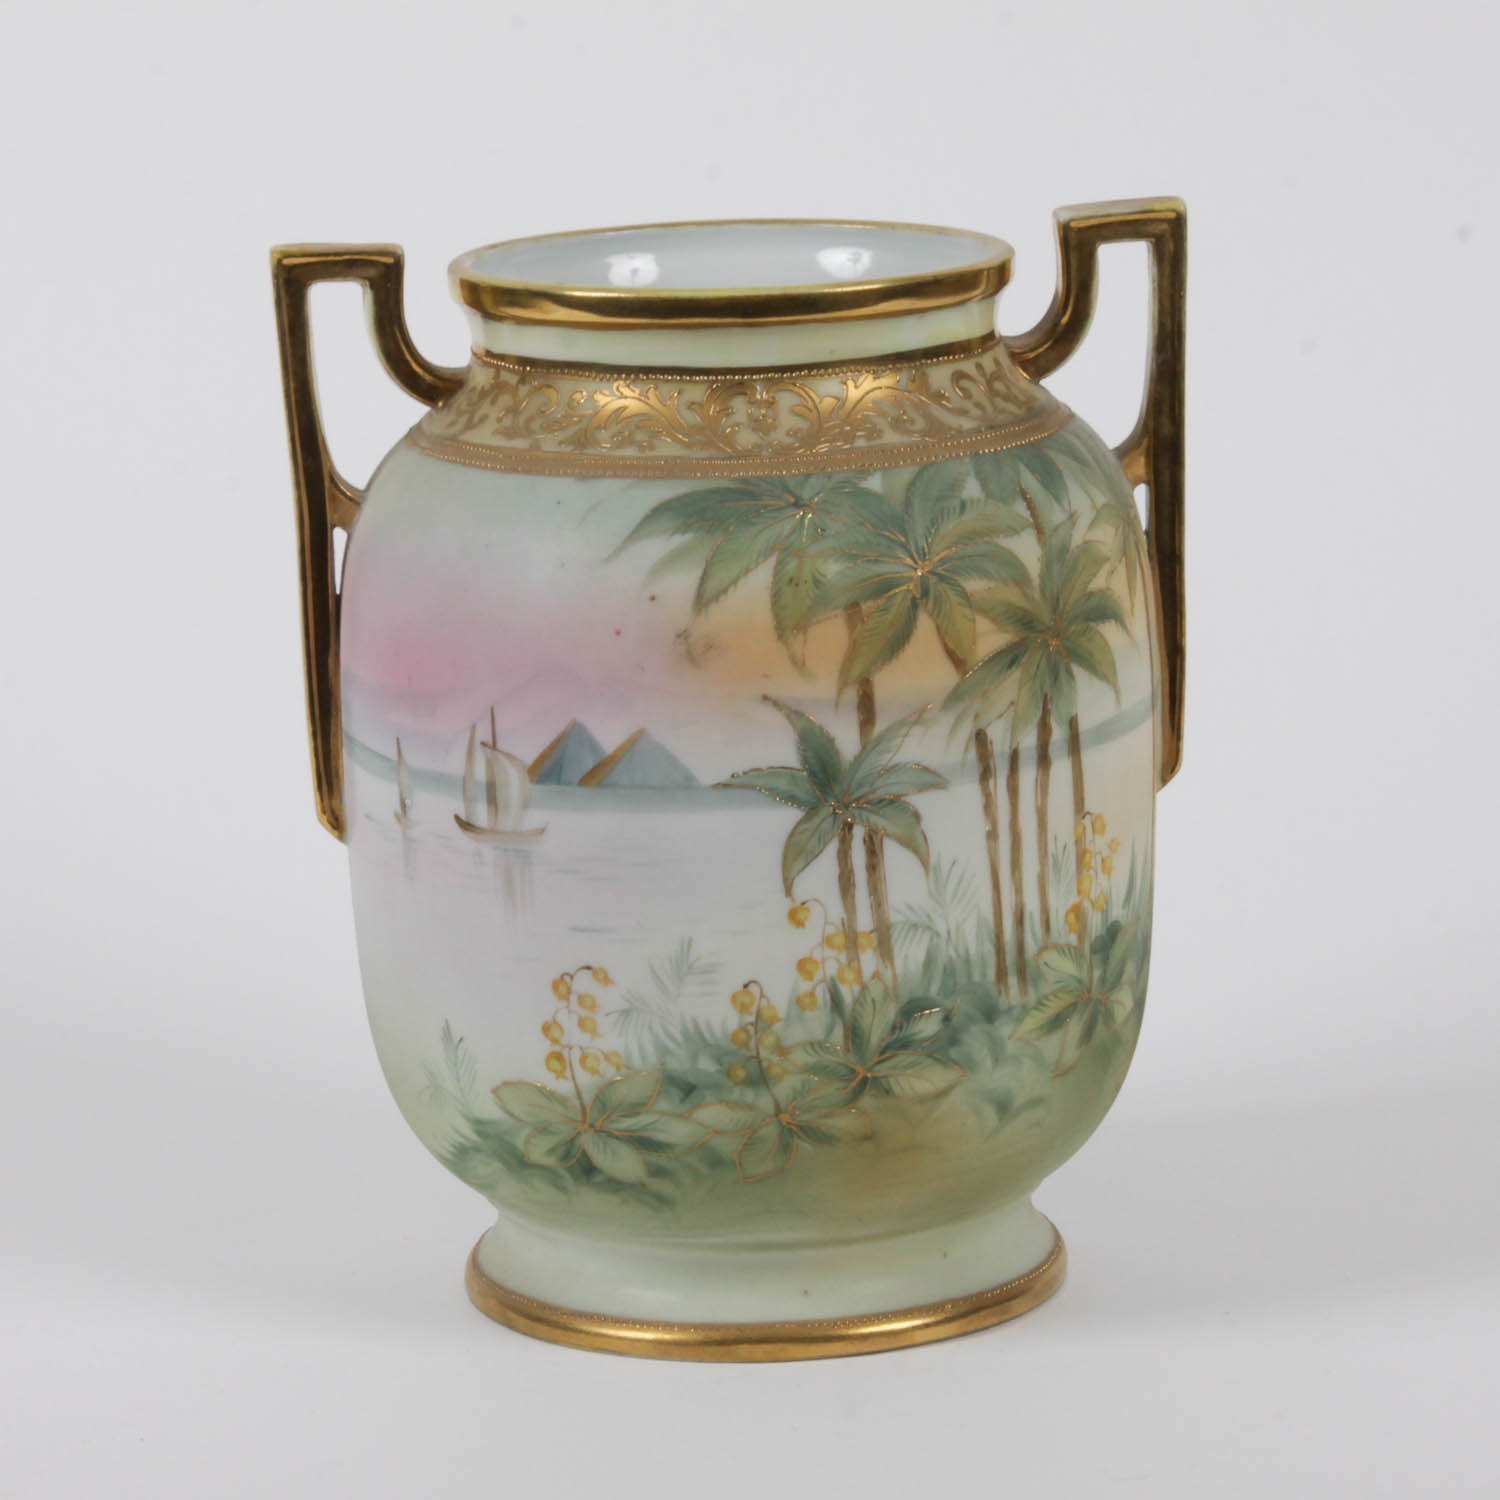 Nippon Vase with Egyptian Imagery